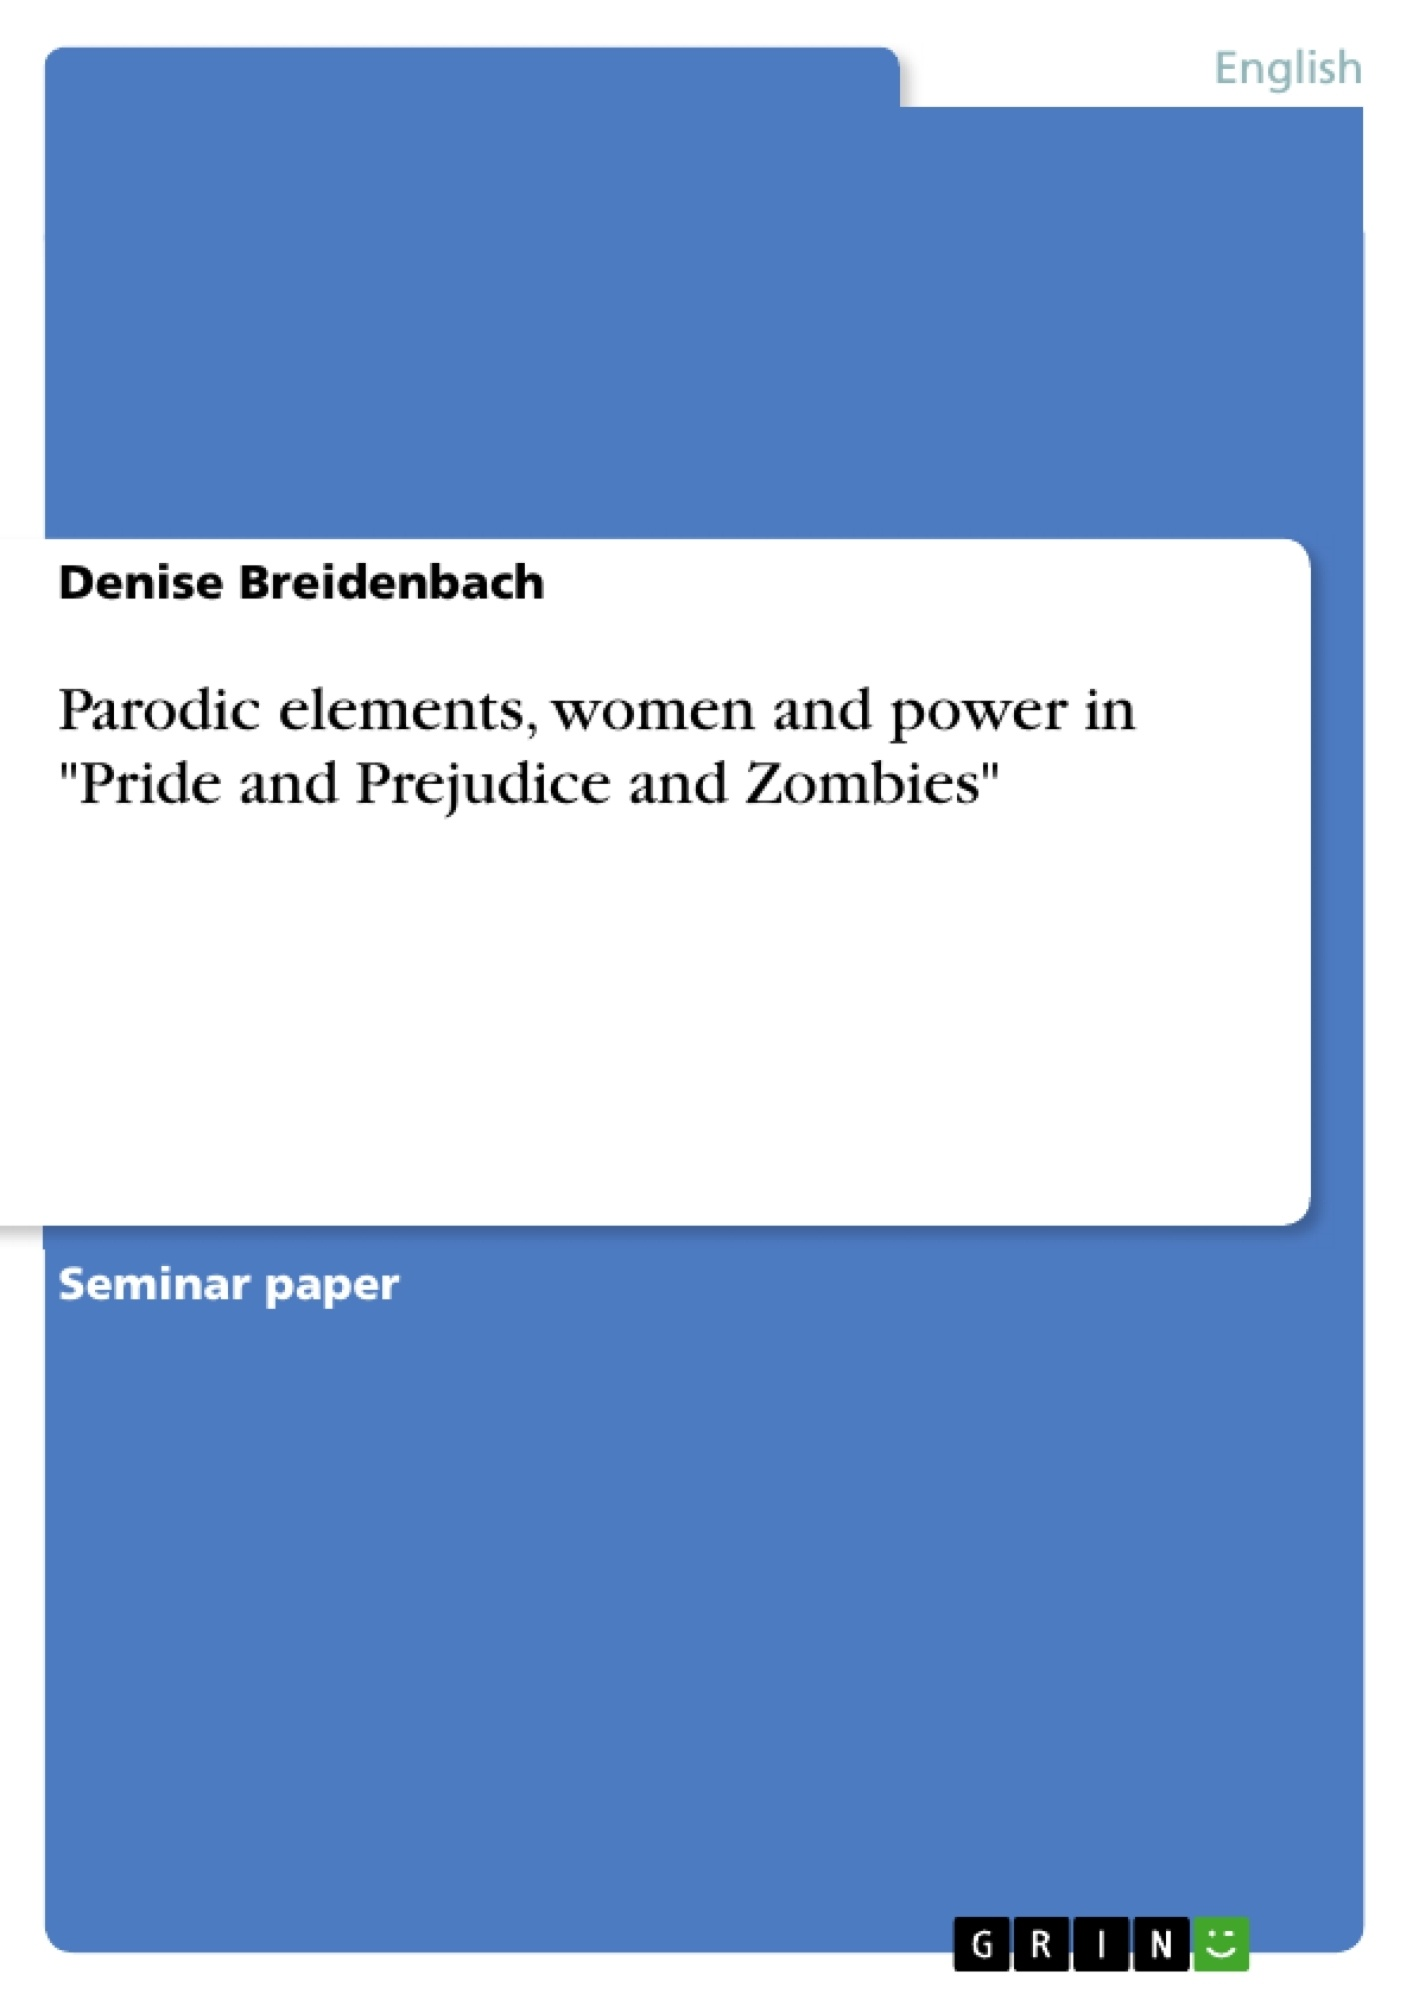 """Title: Parodic elements, women and power in """"Pride and Prejudice and Zombies"""""""